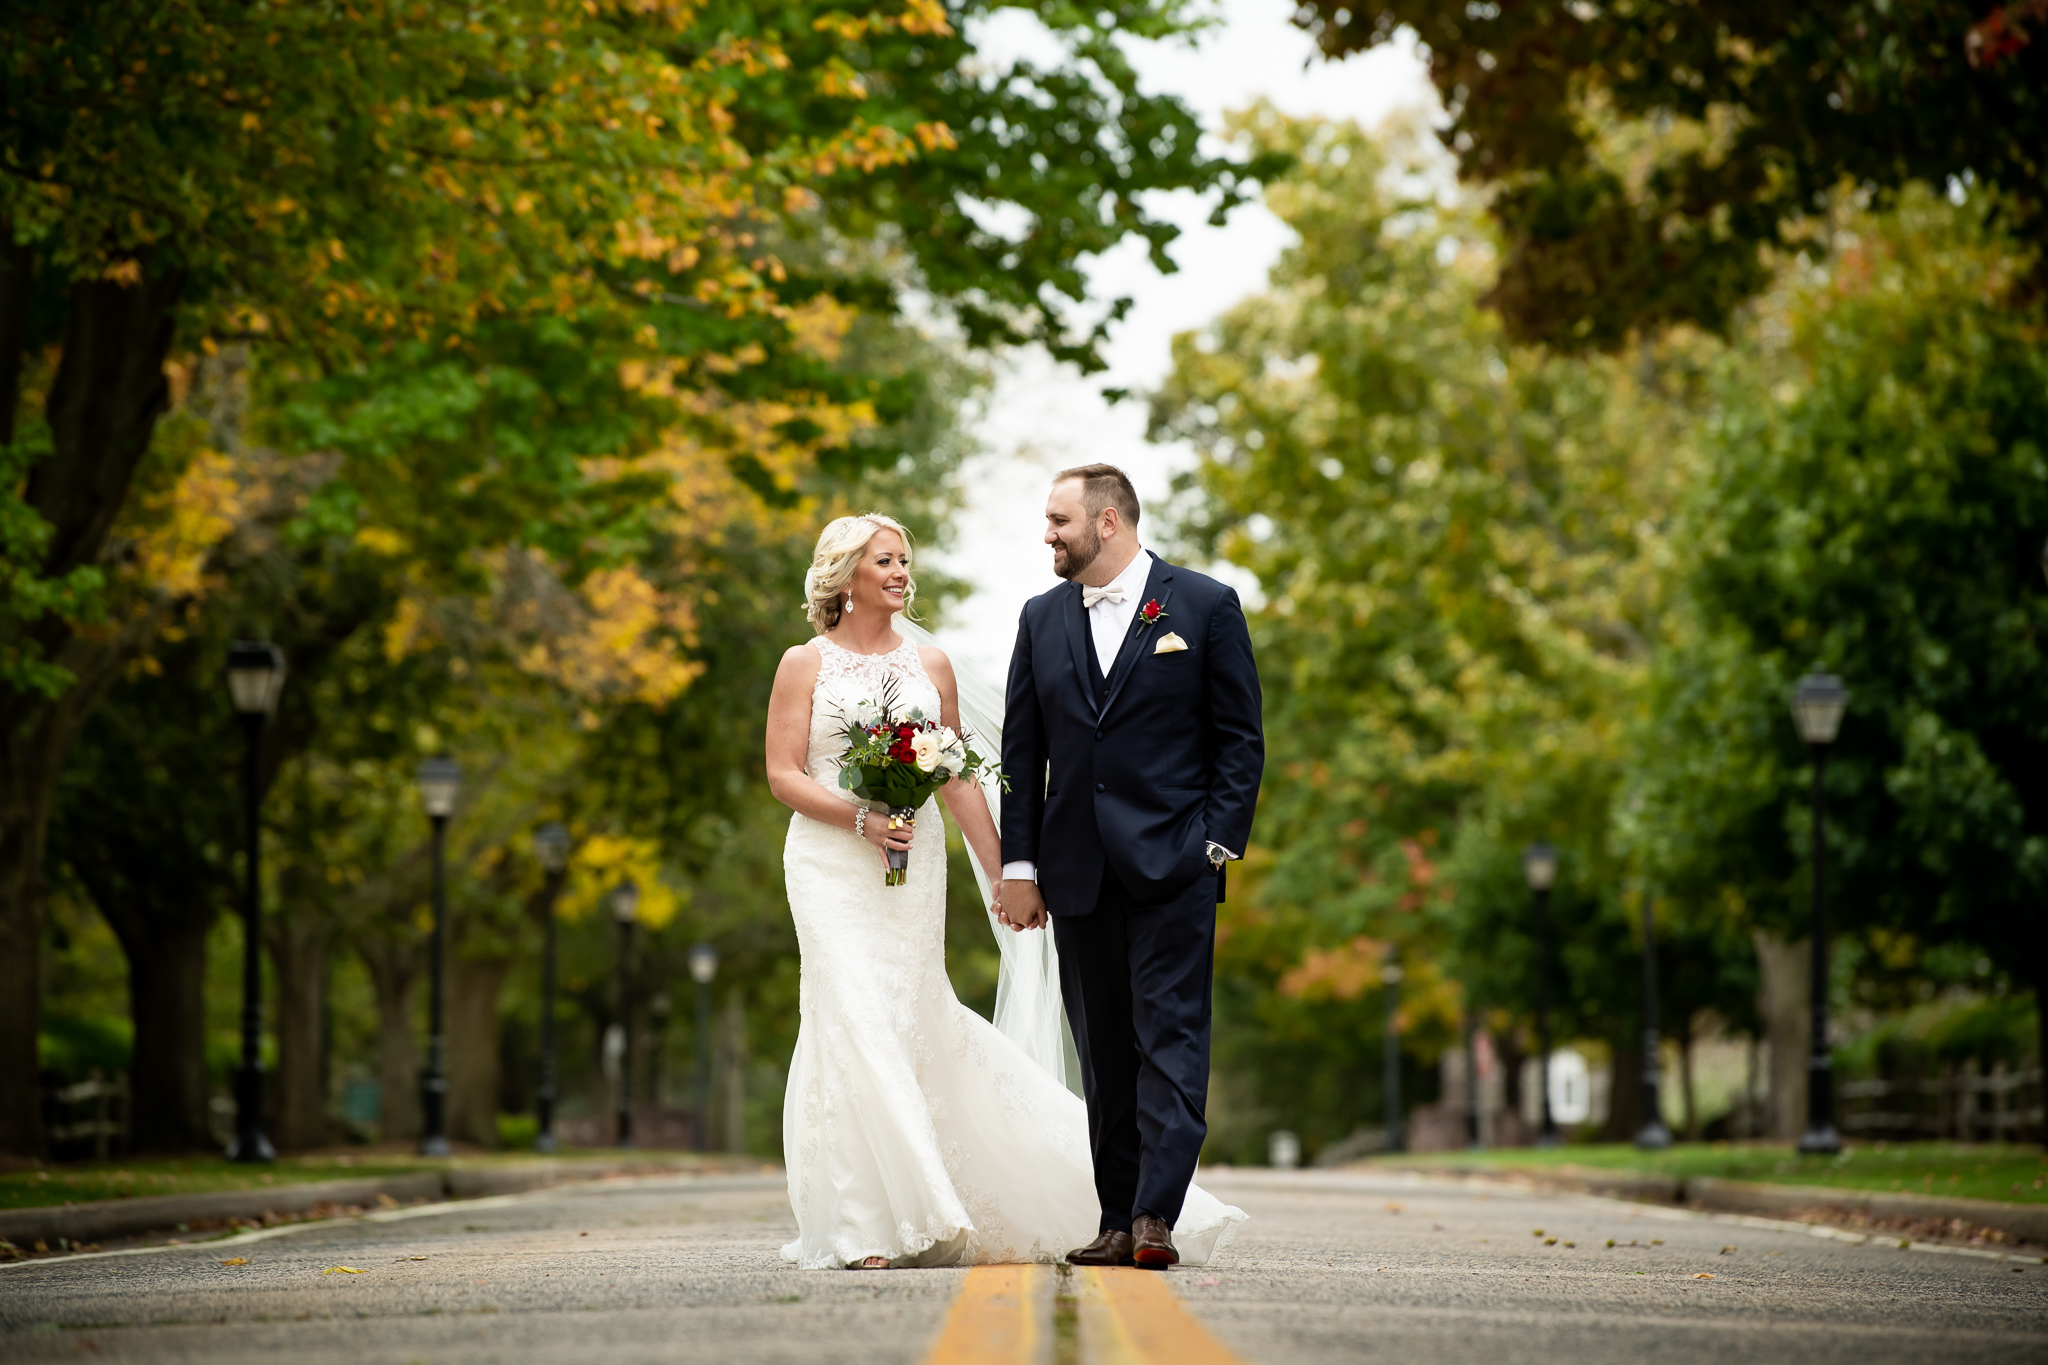 Couple walking together on their wedding day | Lotus Wedding Photography